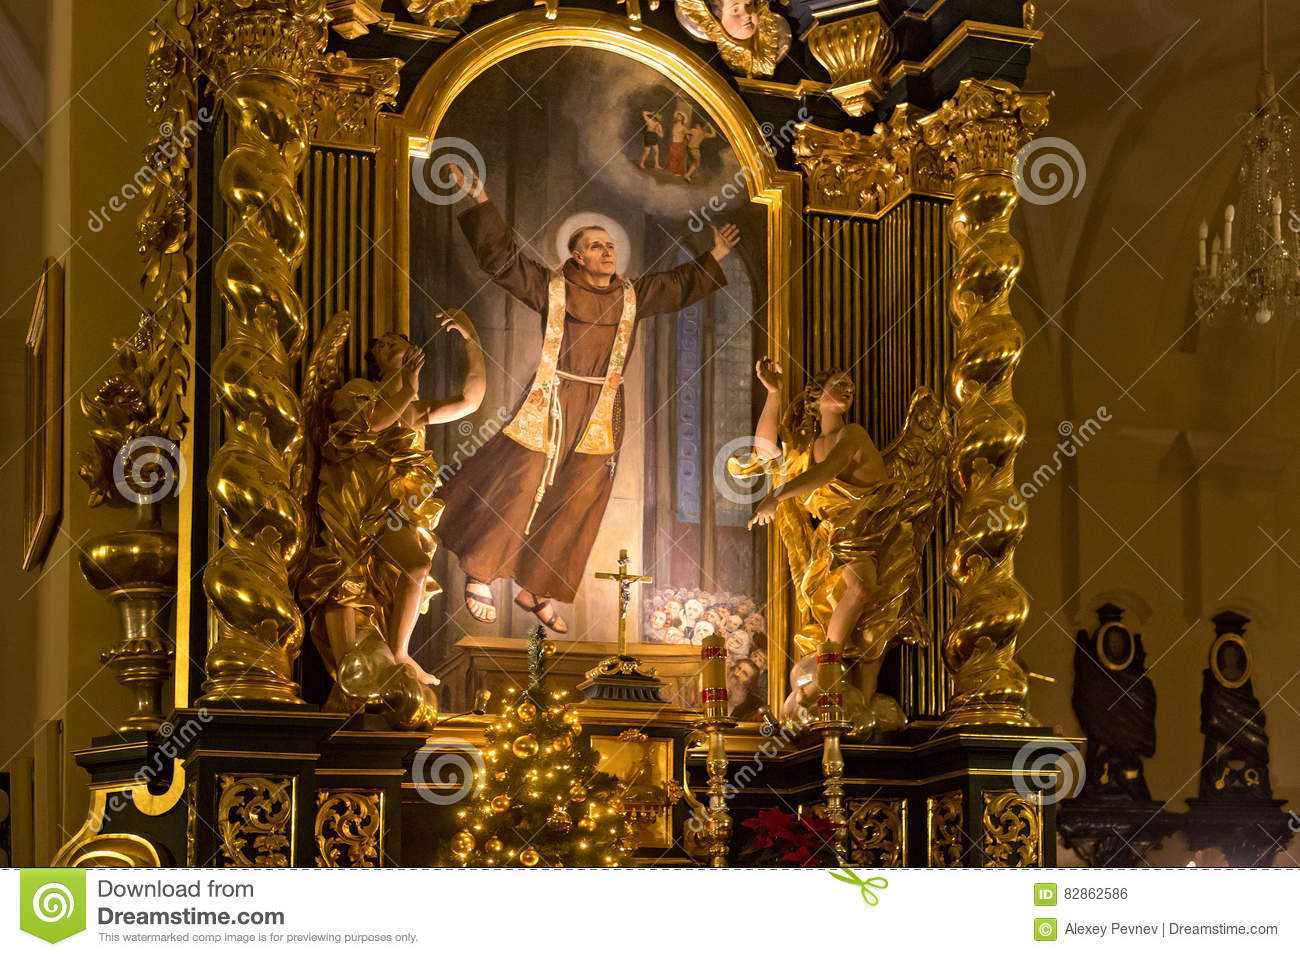 Church decorations for january - Editorial Stock Photo